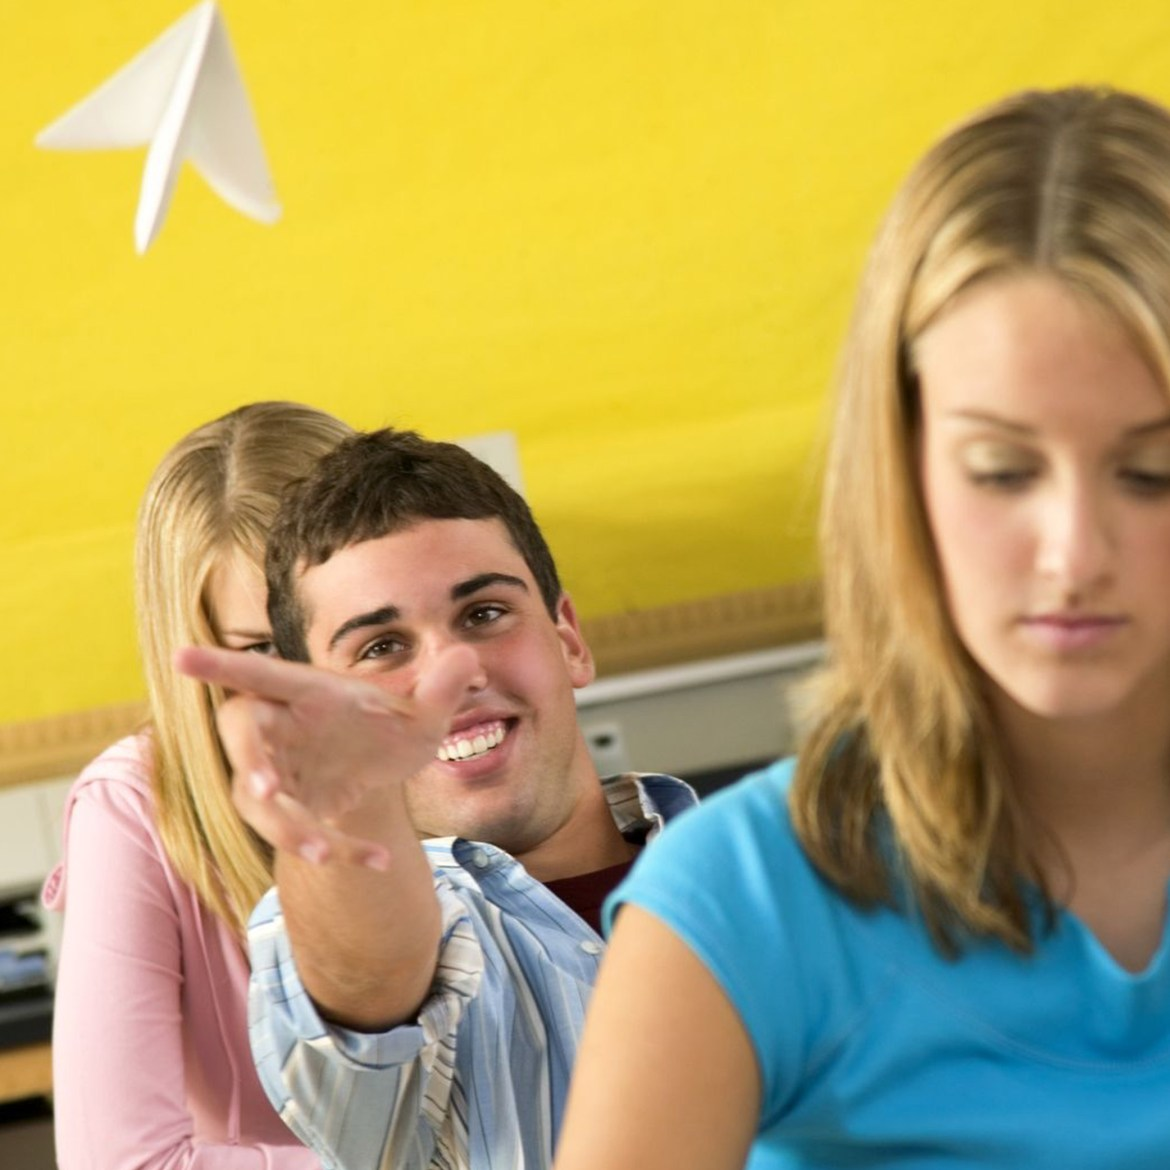 The Kinds Of People You Will Meet In High School: Which One Are You?